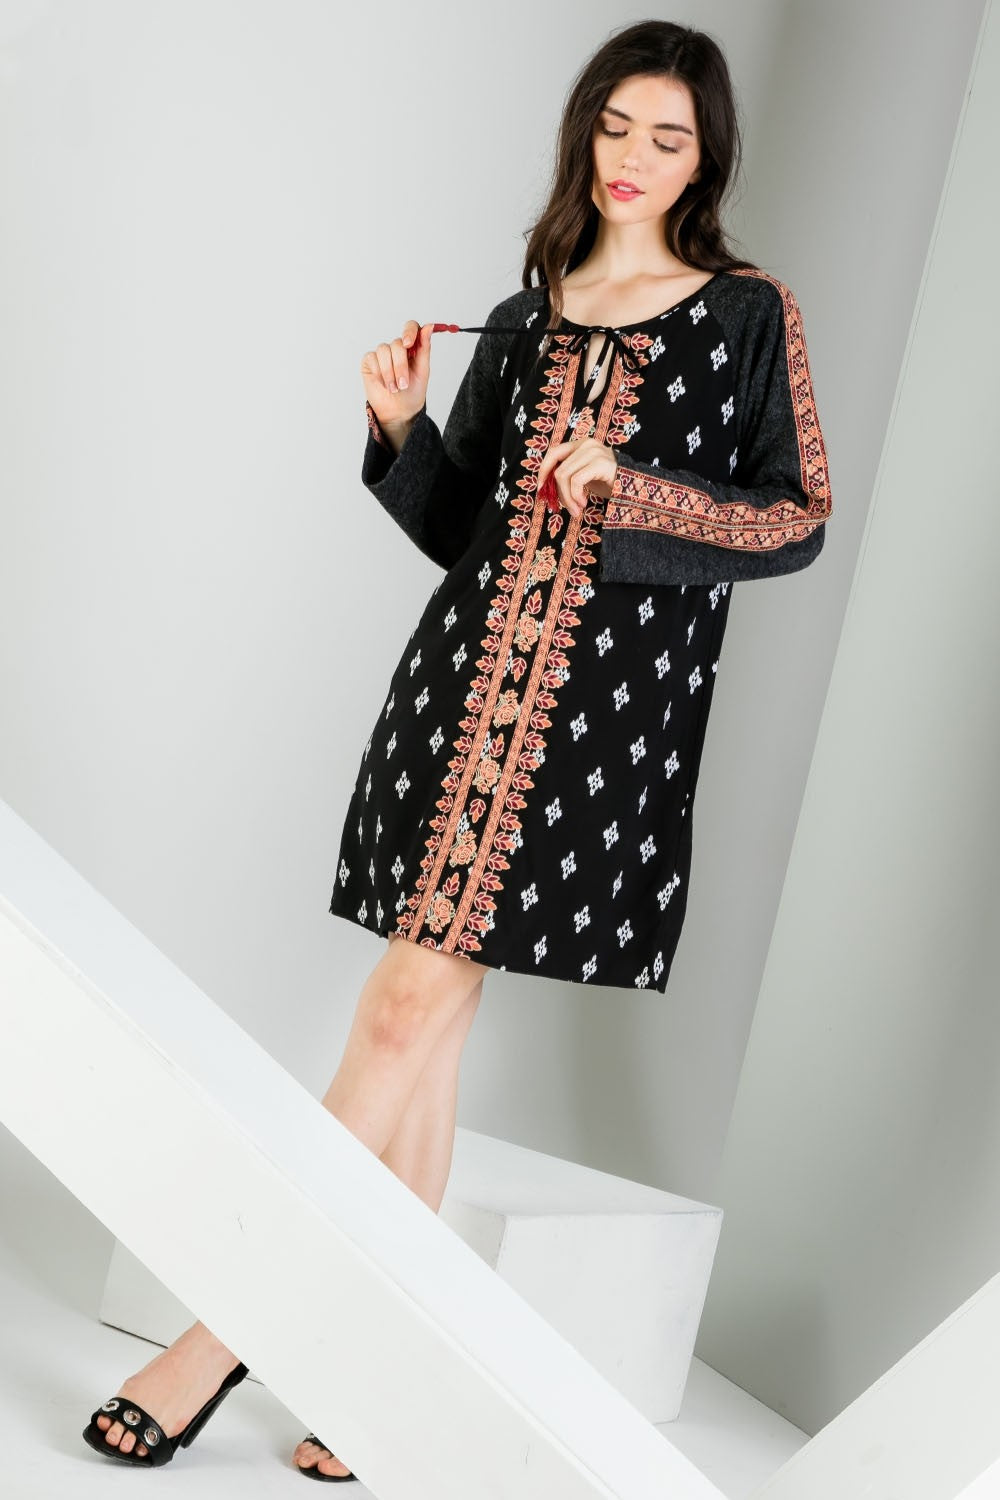 Mixed Print Embroidered Long Sleeve Dress New View